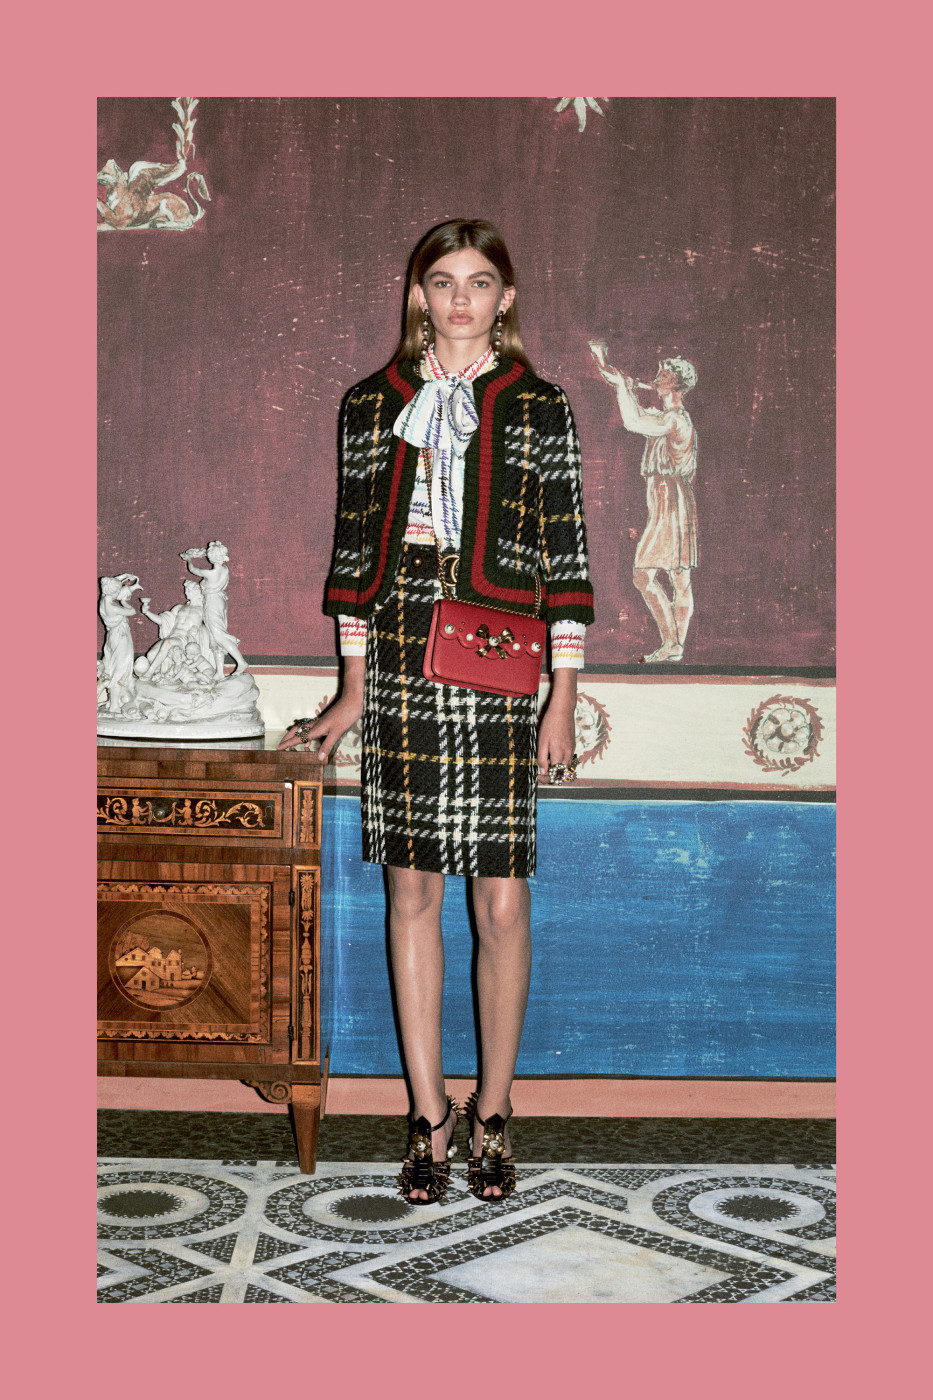 paula-schinschel-gucci-pre-fall-2016-lookbook-79